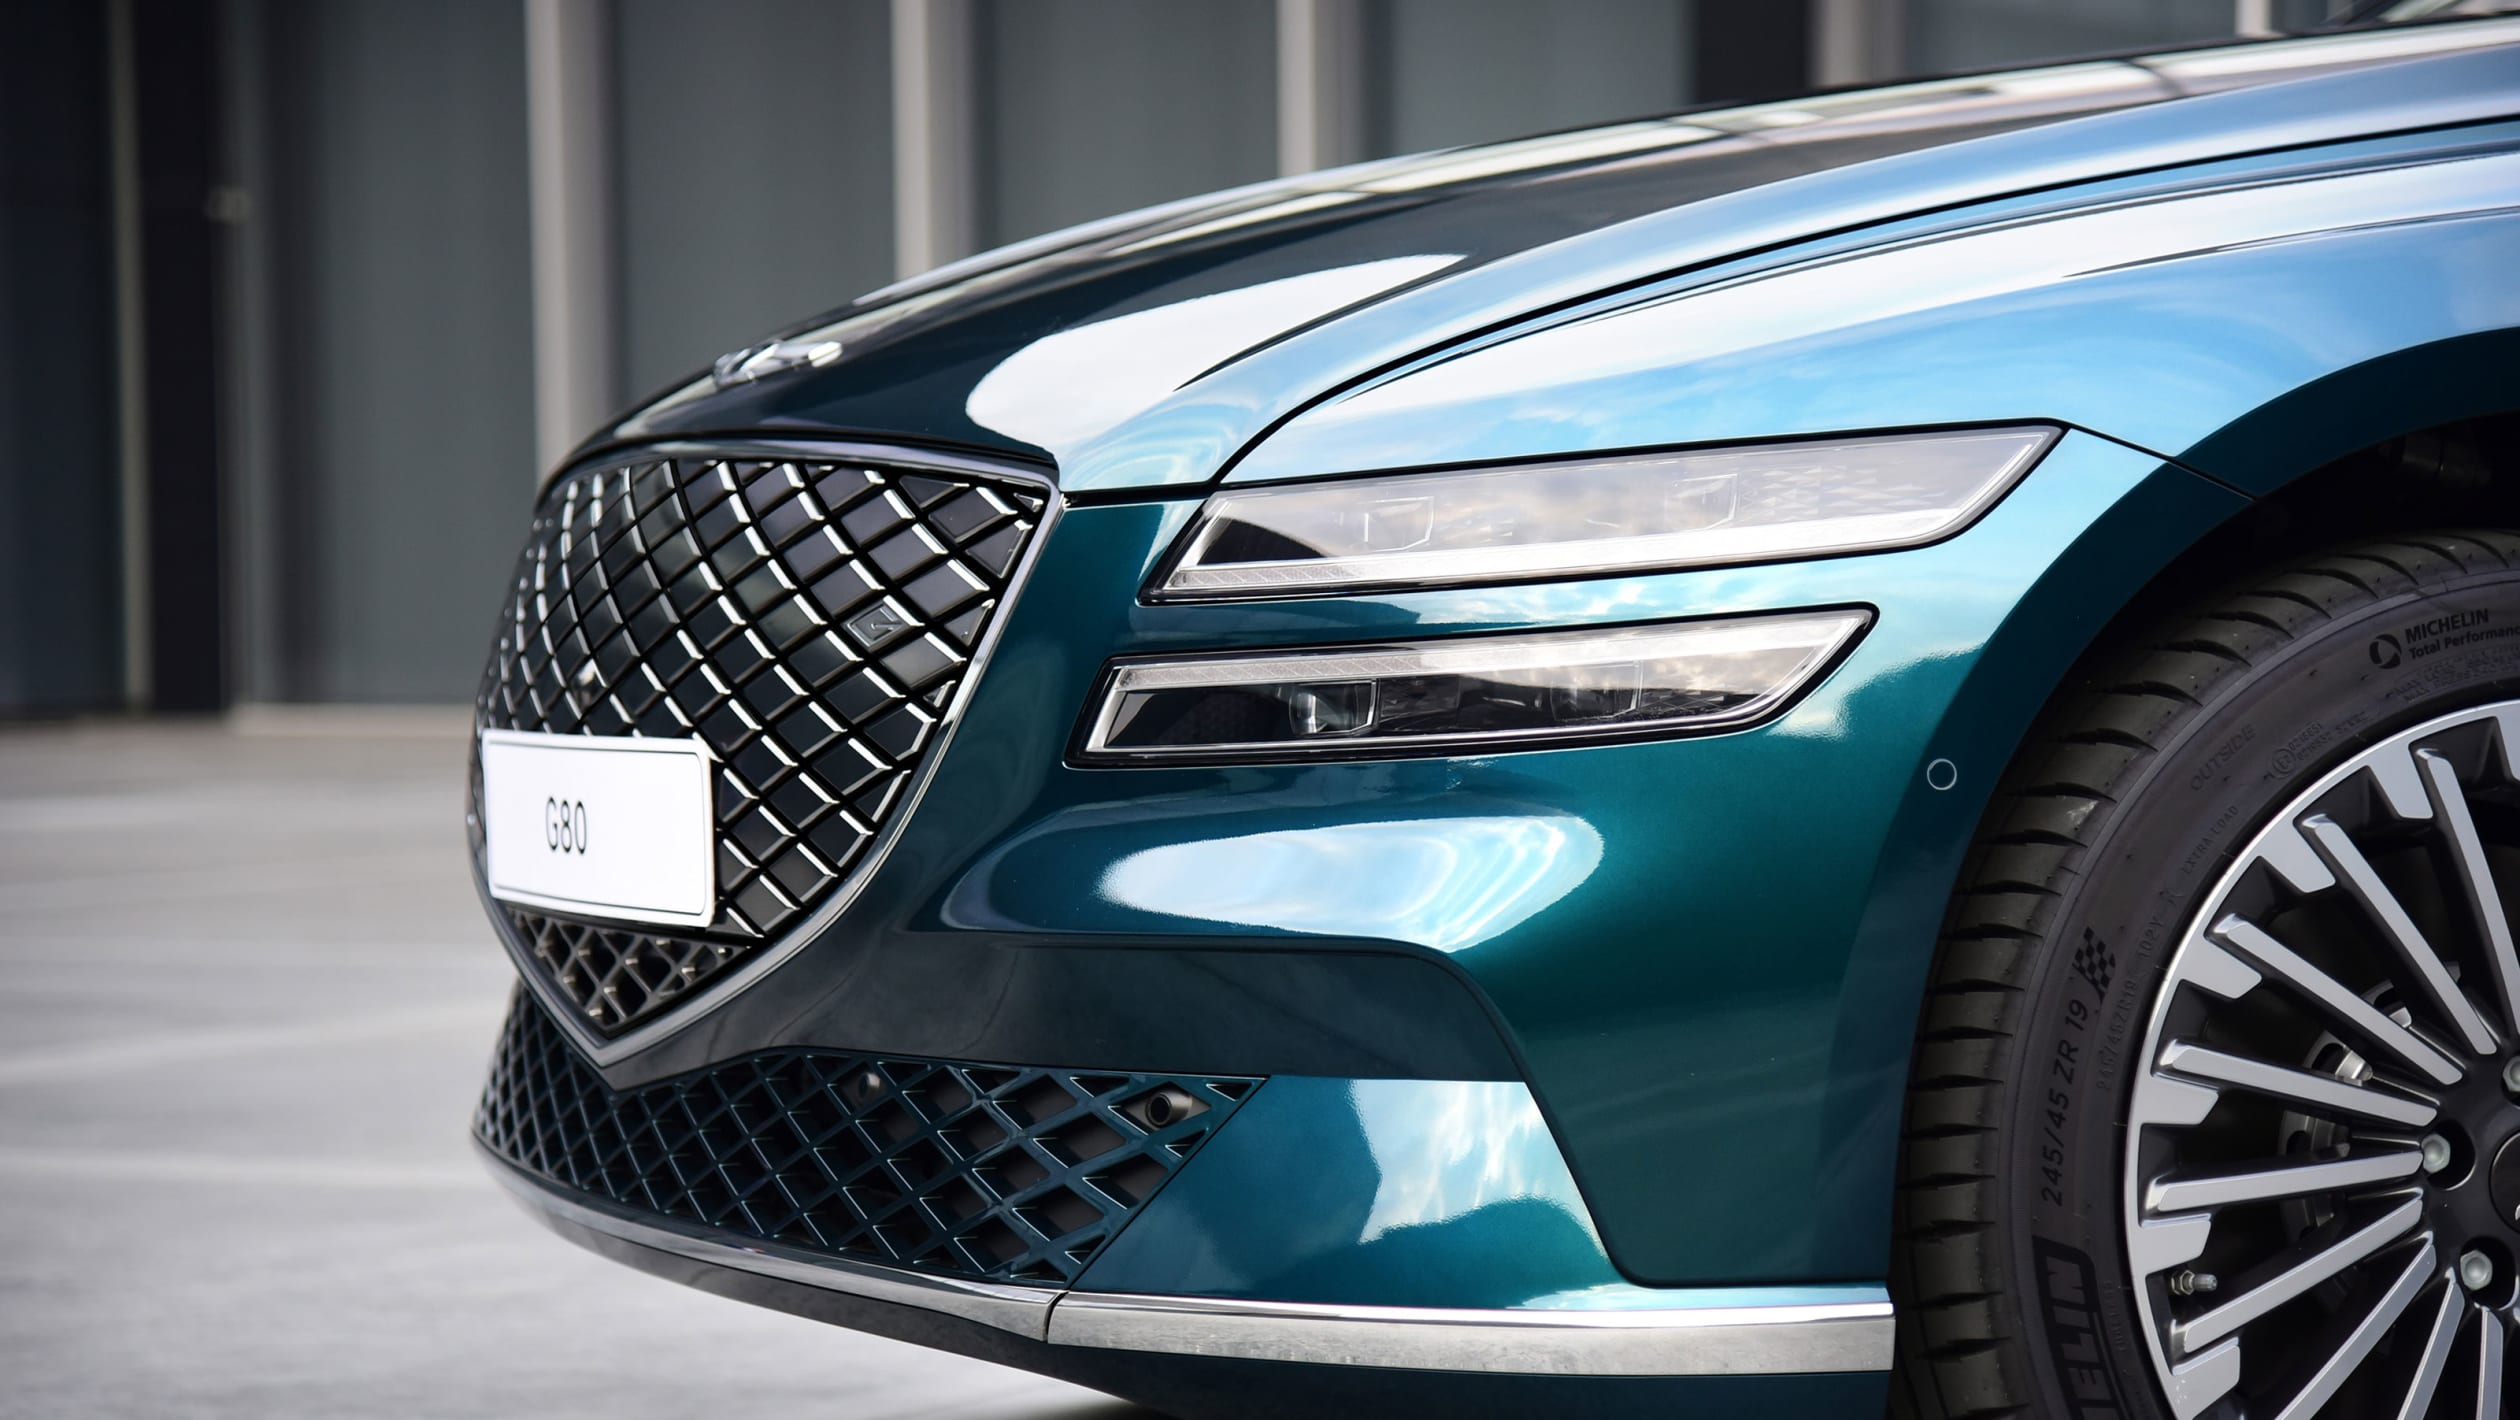 The front of the Genesis Electrified G80